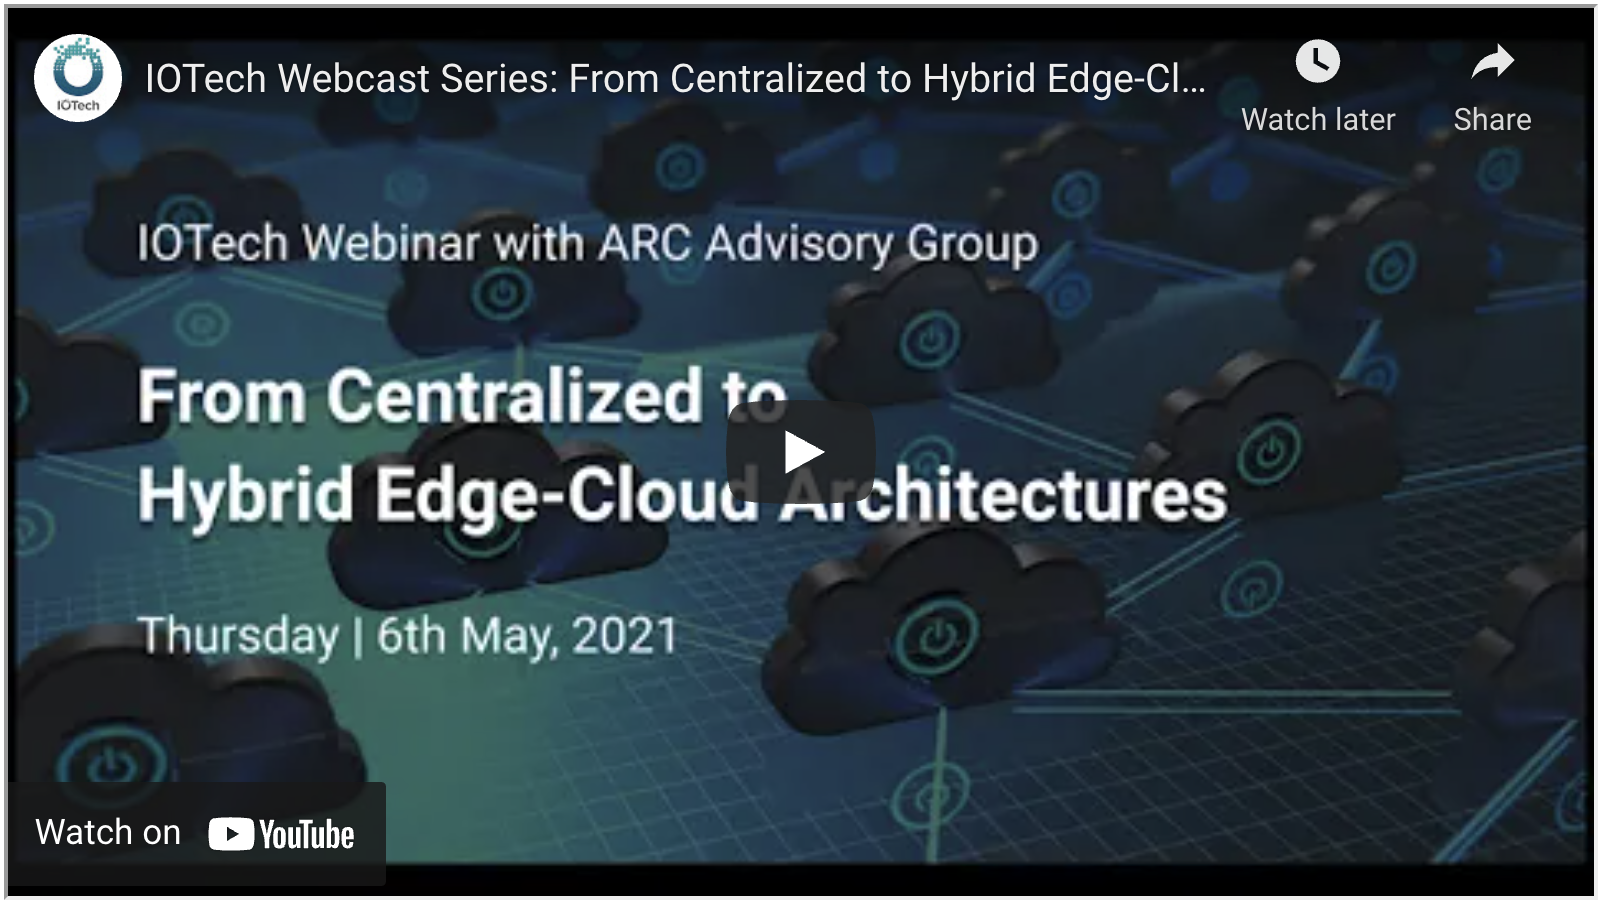 IOTech Webcast Series: From Centralized to Hybrid Edge-Cloud Architectures